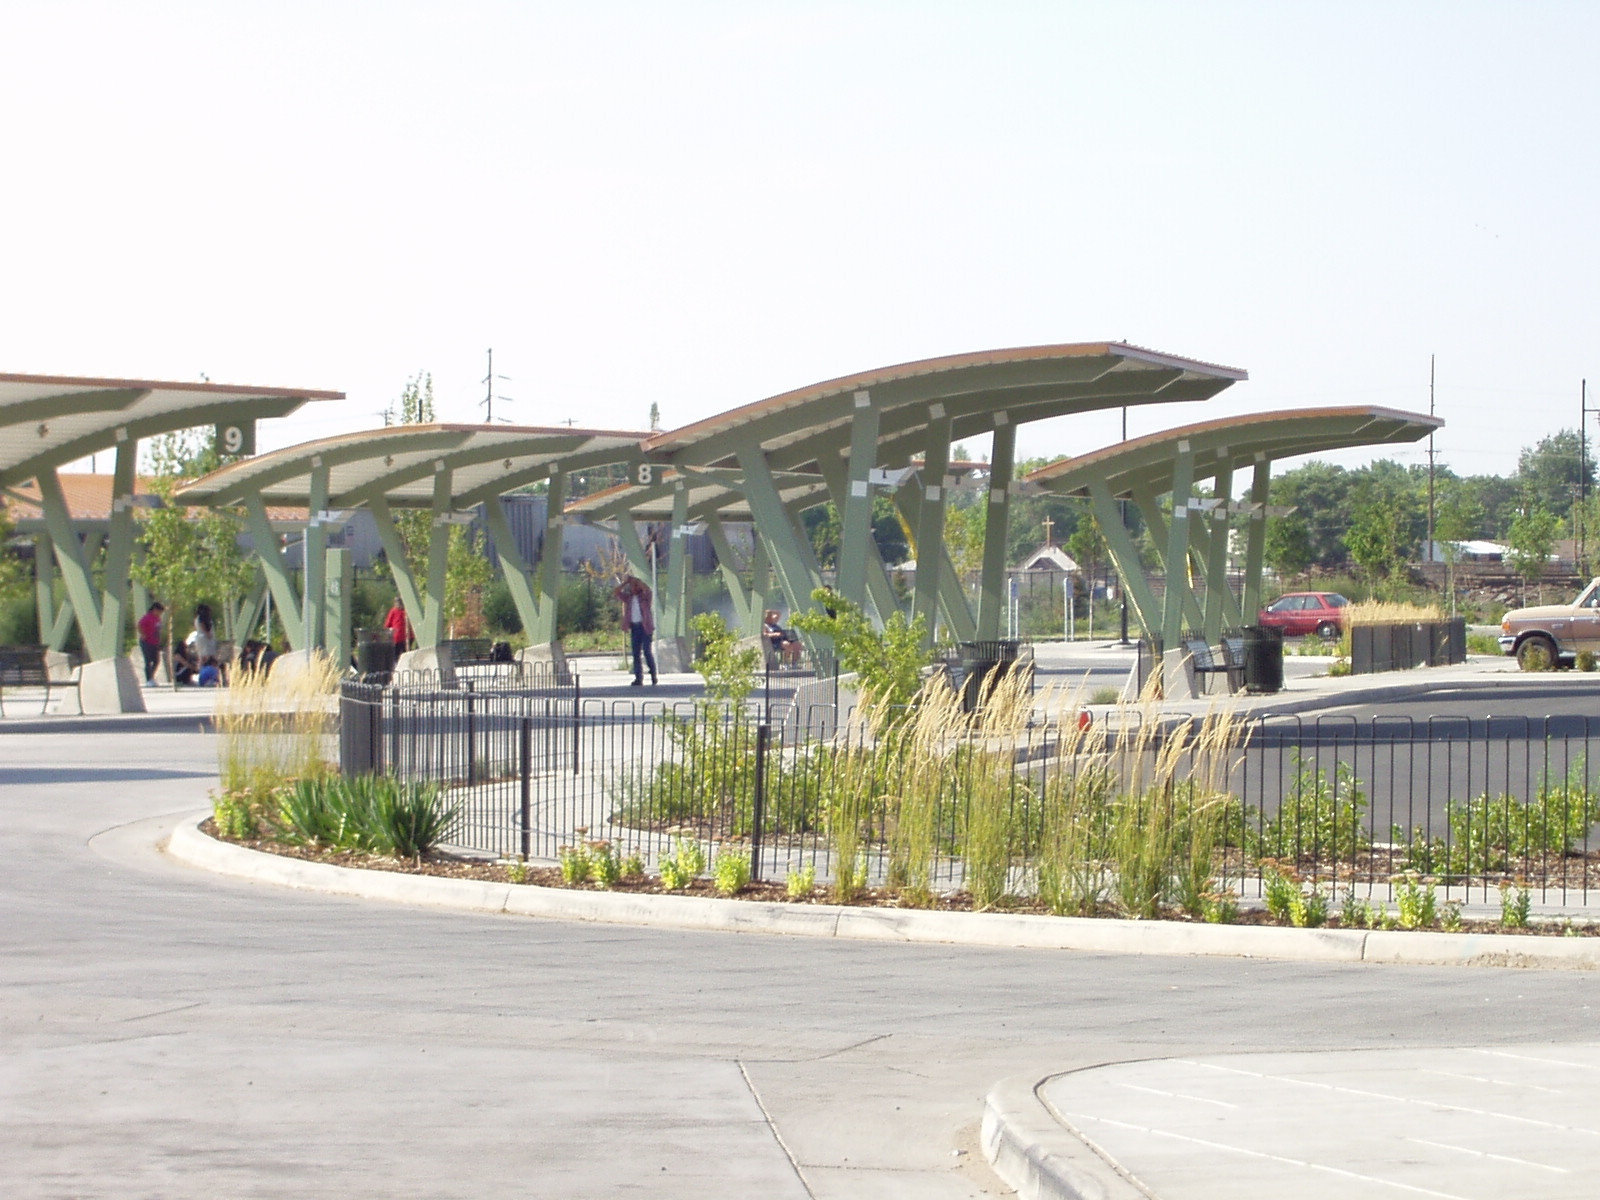 Ogden Intermodal Transit Center